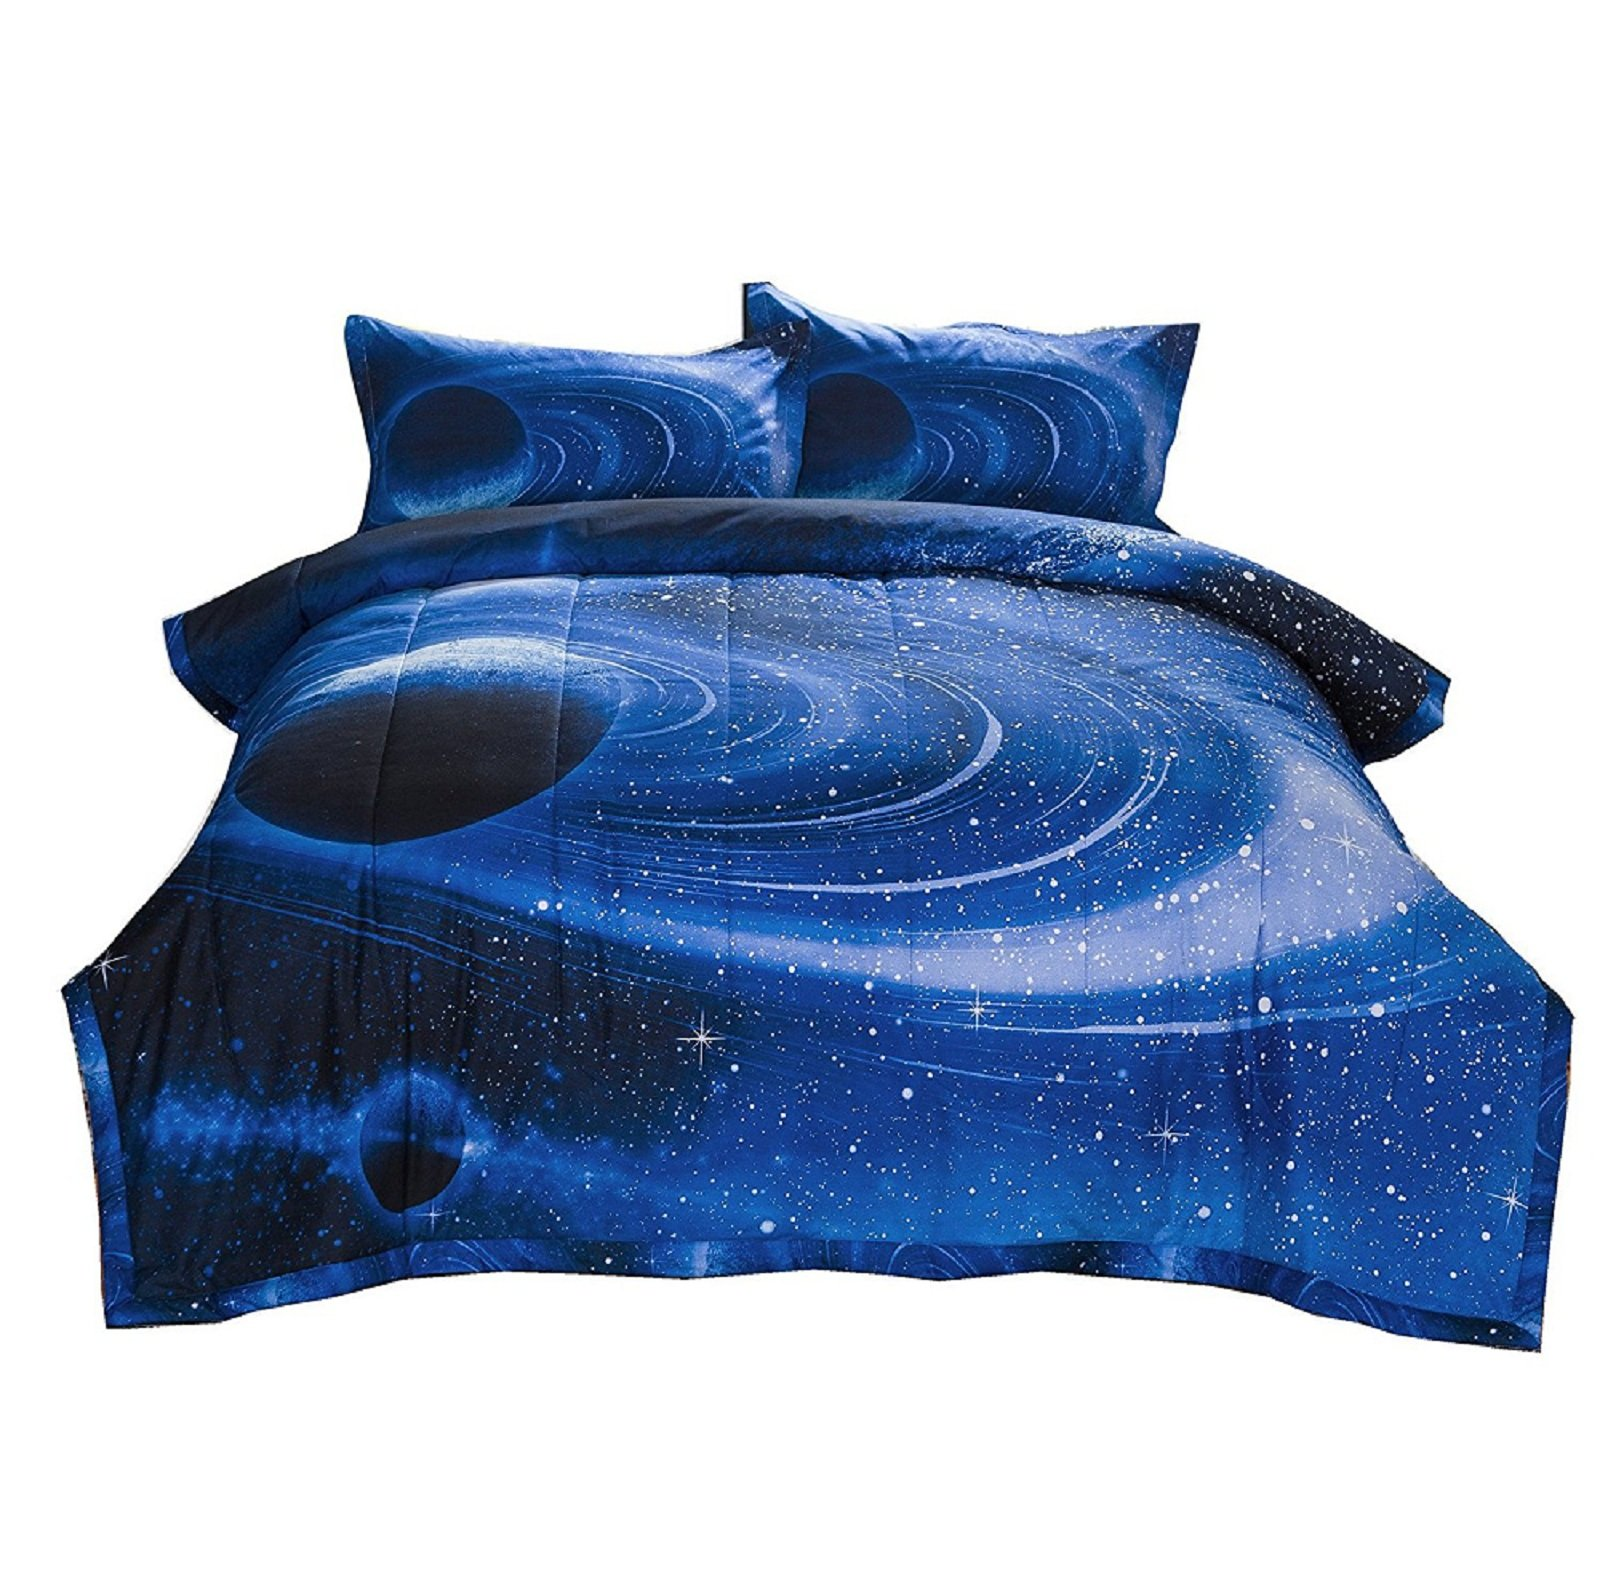 A Nice Night Blue 3 Pieces Comforter Set Galaxy Bedding Set Full Size with 2 Matching Pillows